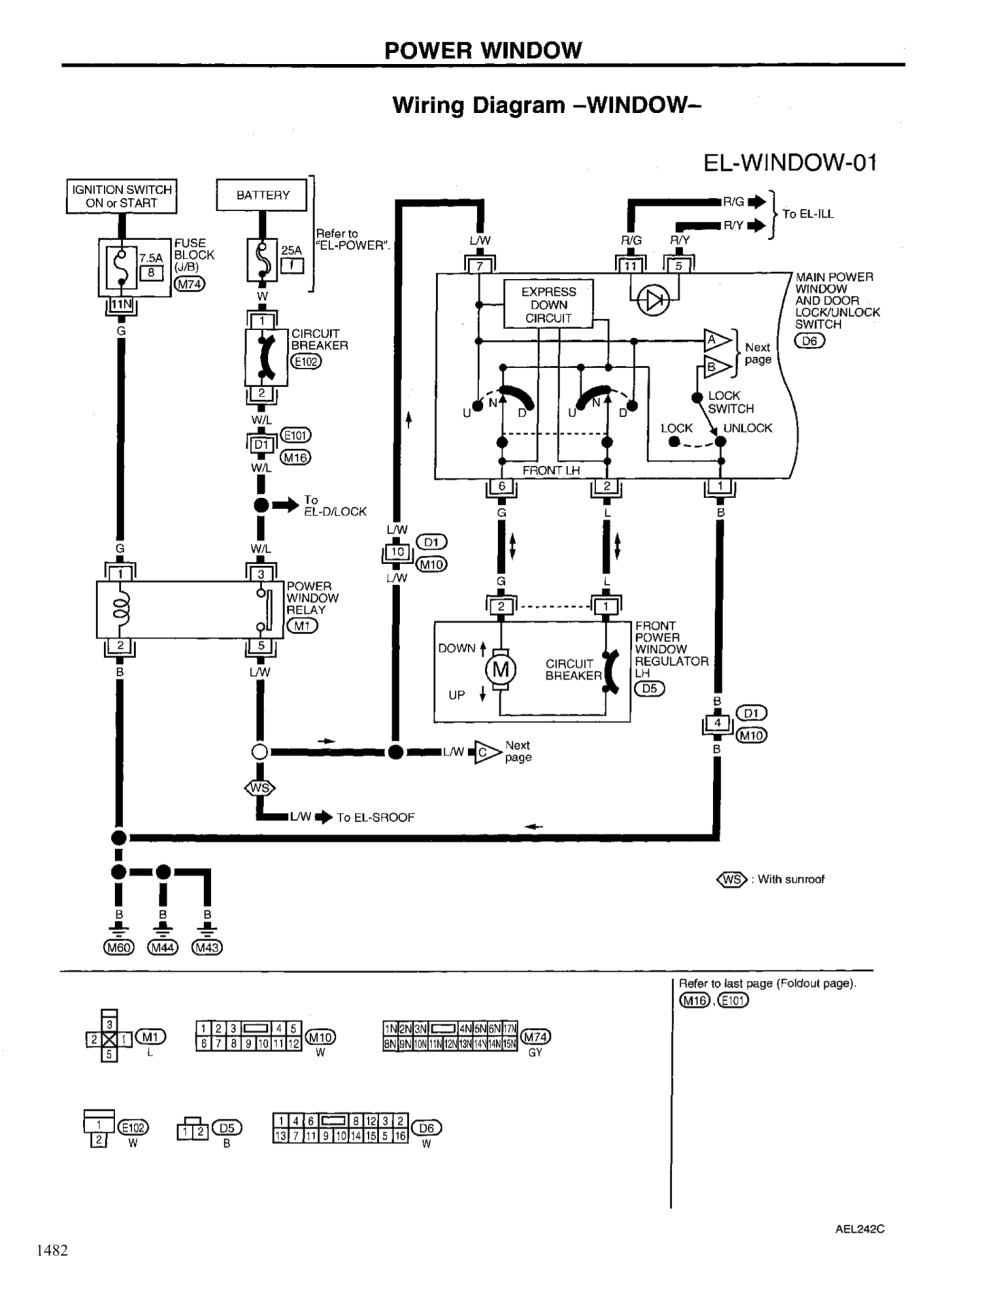 Magnificent Nissan Altima Wiring Diagram Collection Wiring Diagram Sample Wiring Digital Resources Remcakbiperorg